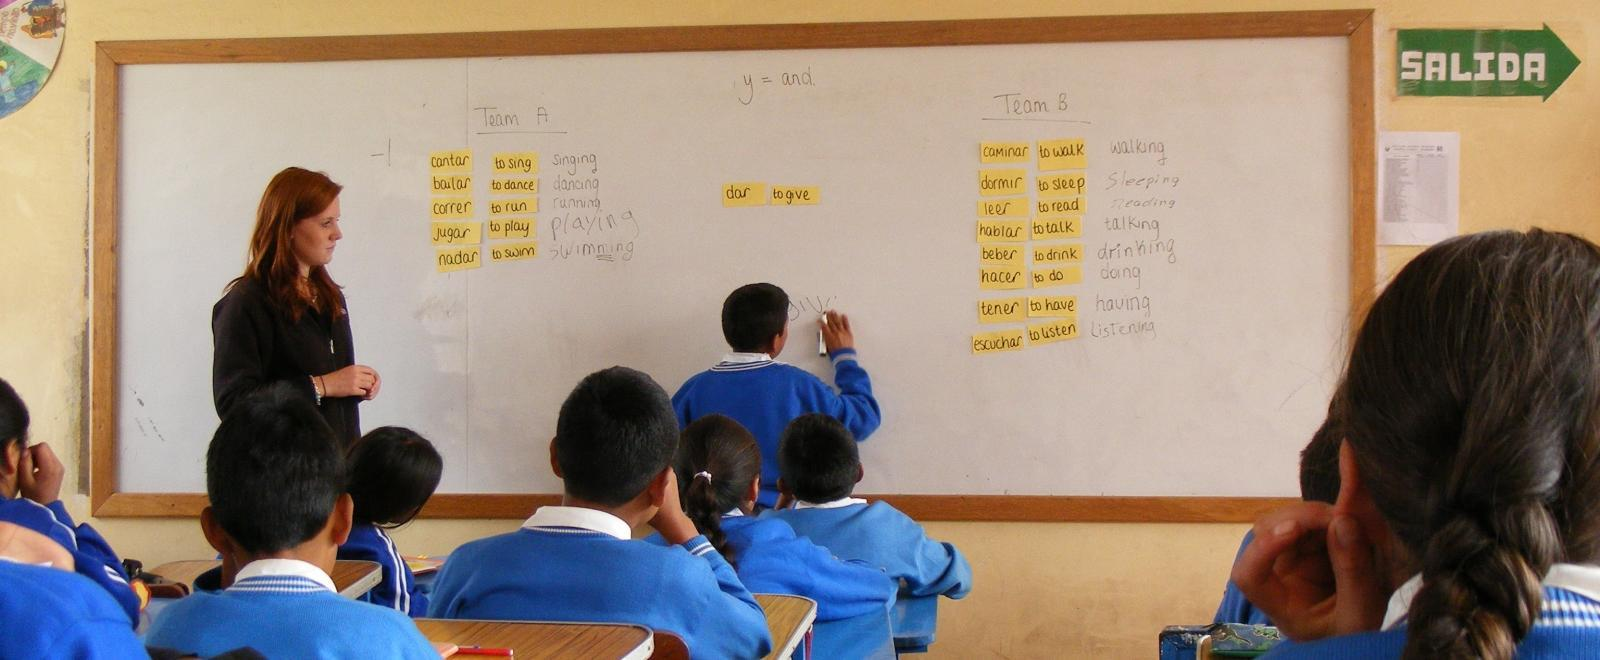 A student finishes an English exercise on the white board at a volunteer teaching placement in Peru.